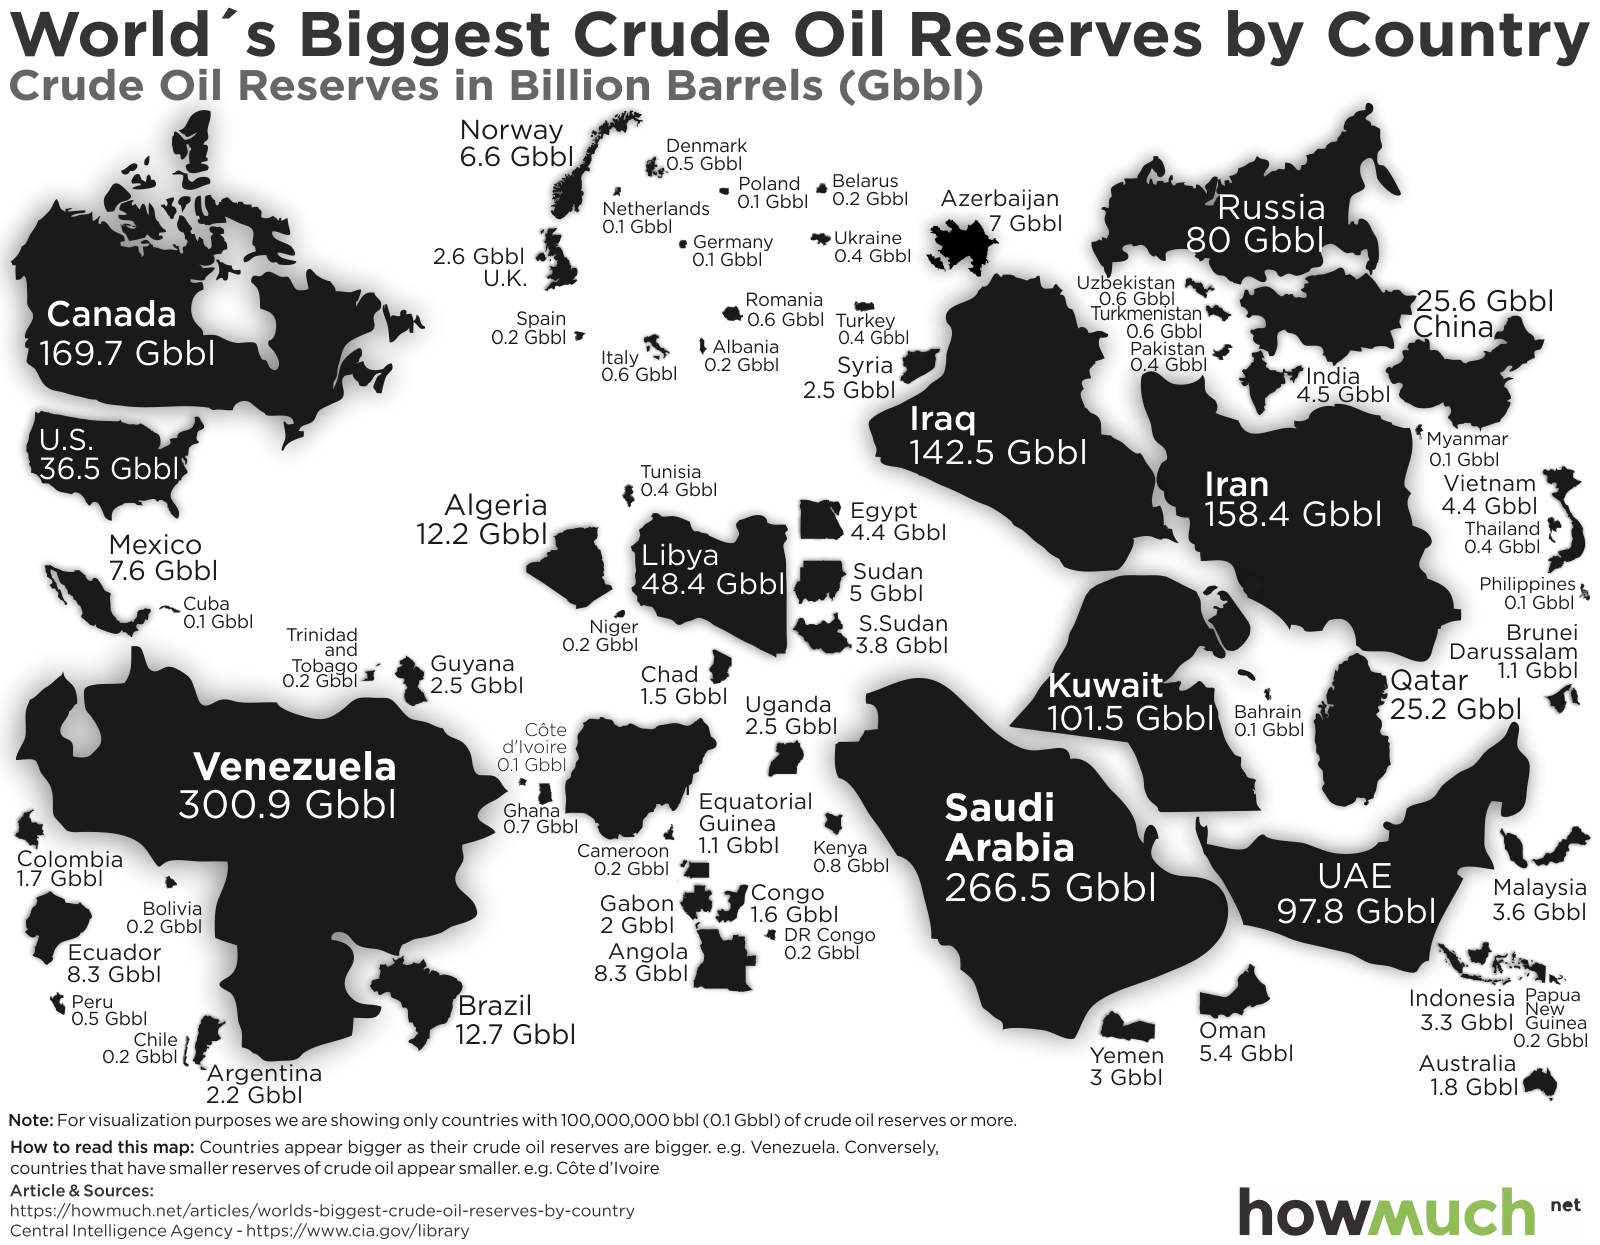 howmuch.net crude oil